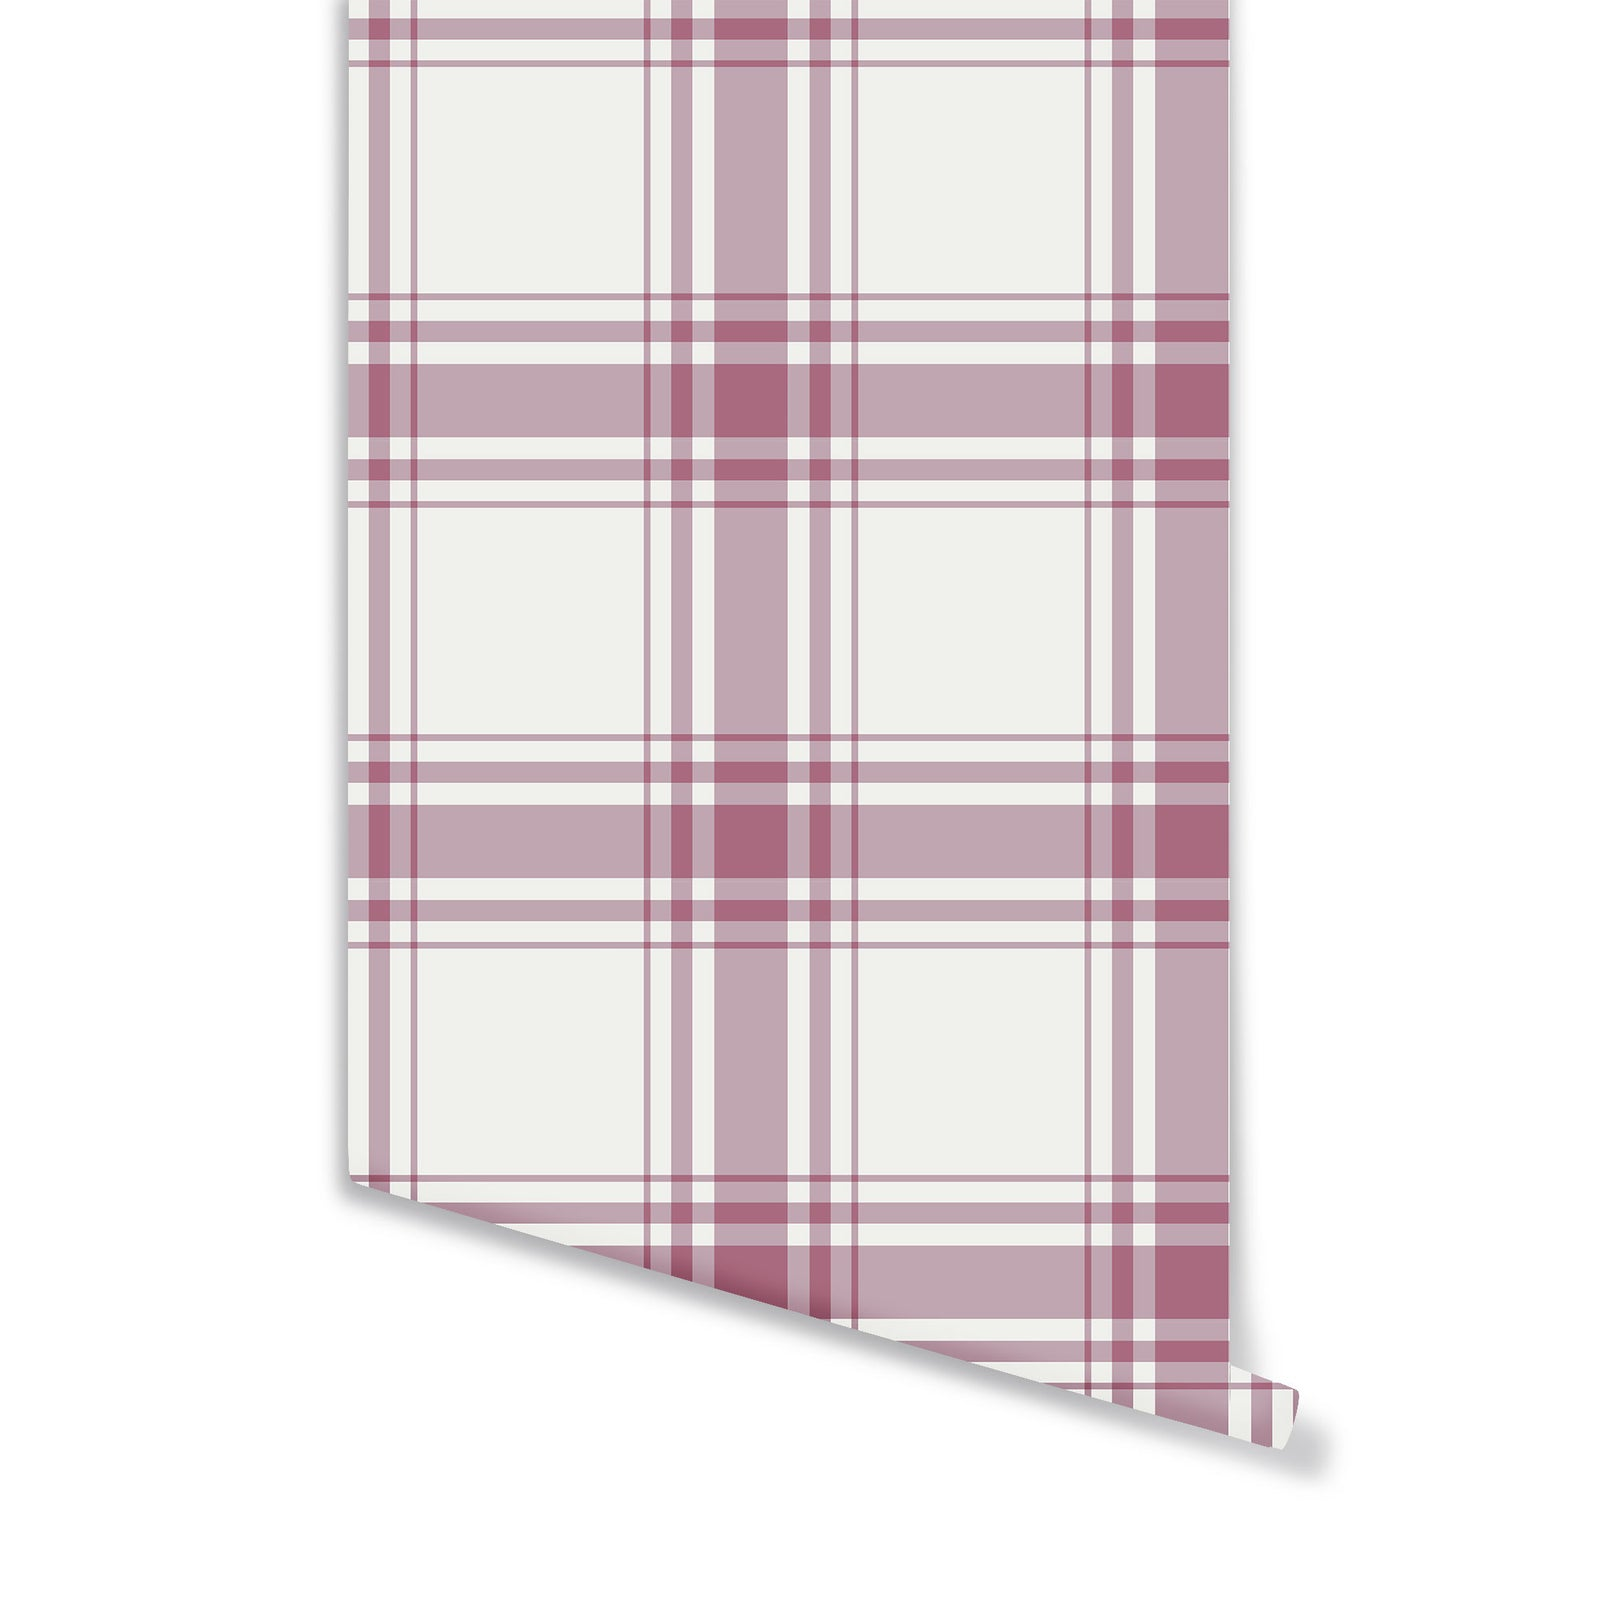 Oxford Plaid Wallpaper in Rose